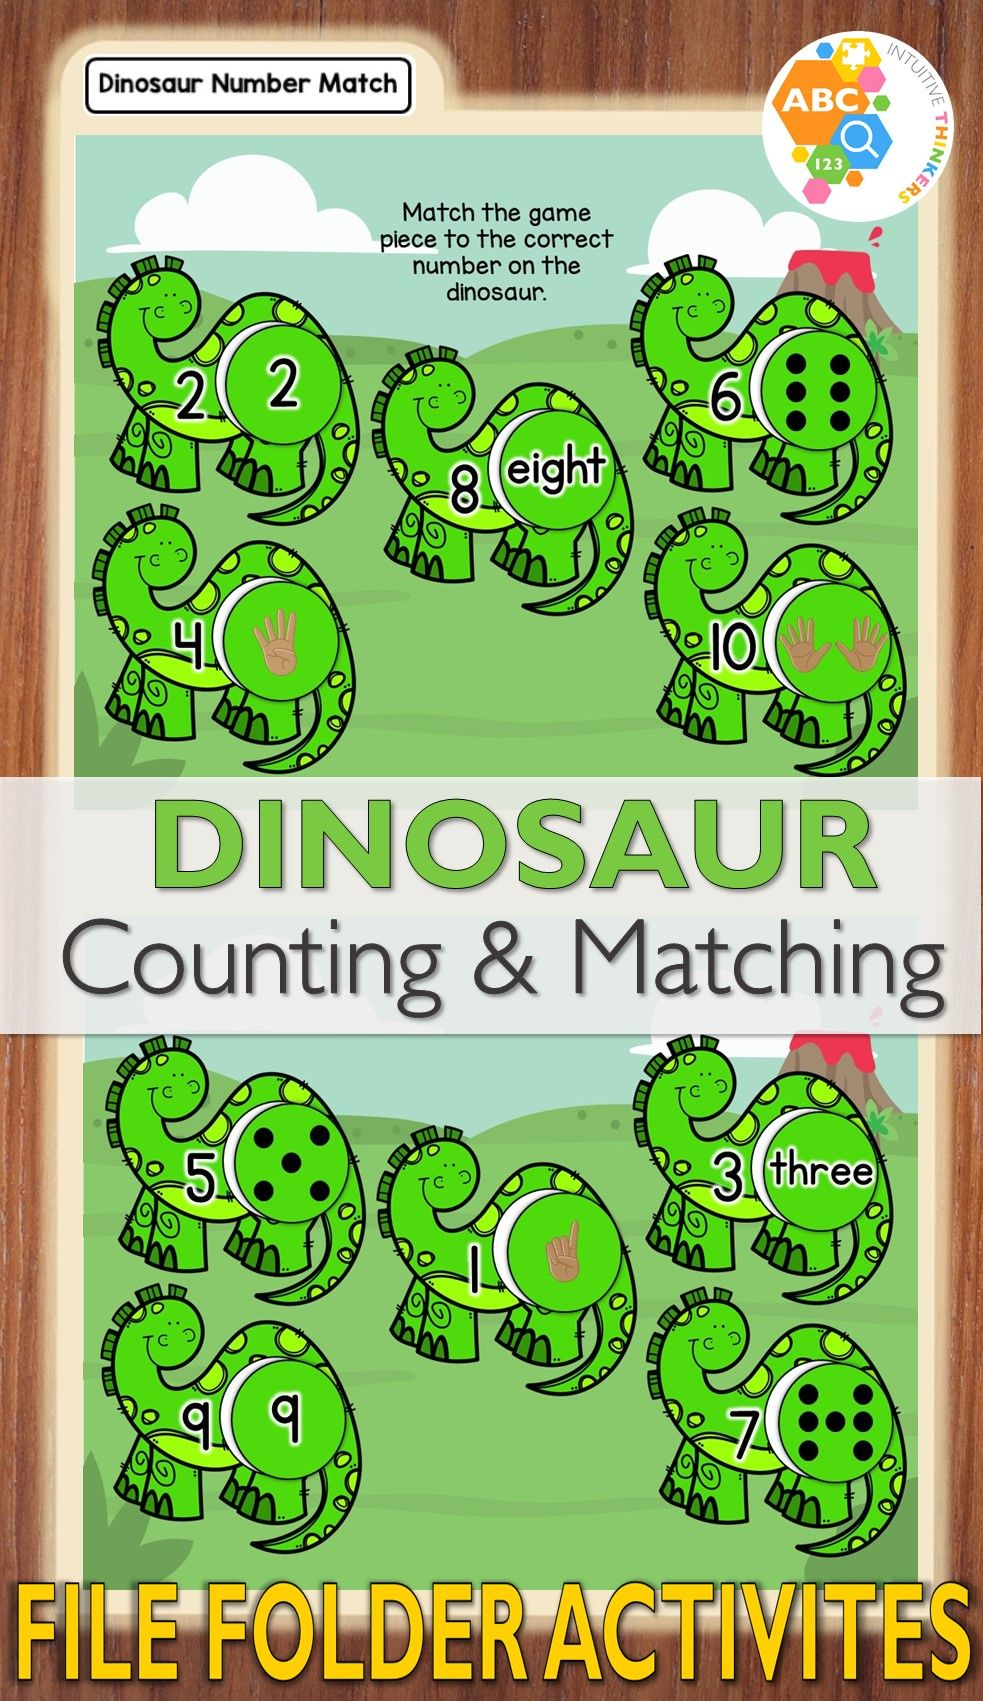 Dinosaur Counting and Matching File Folder Activities | Tot school ...